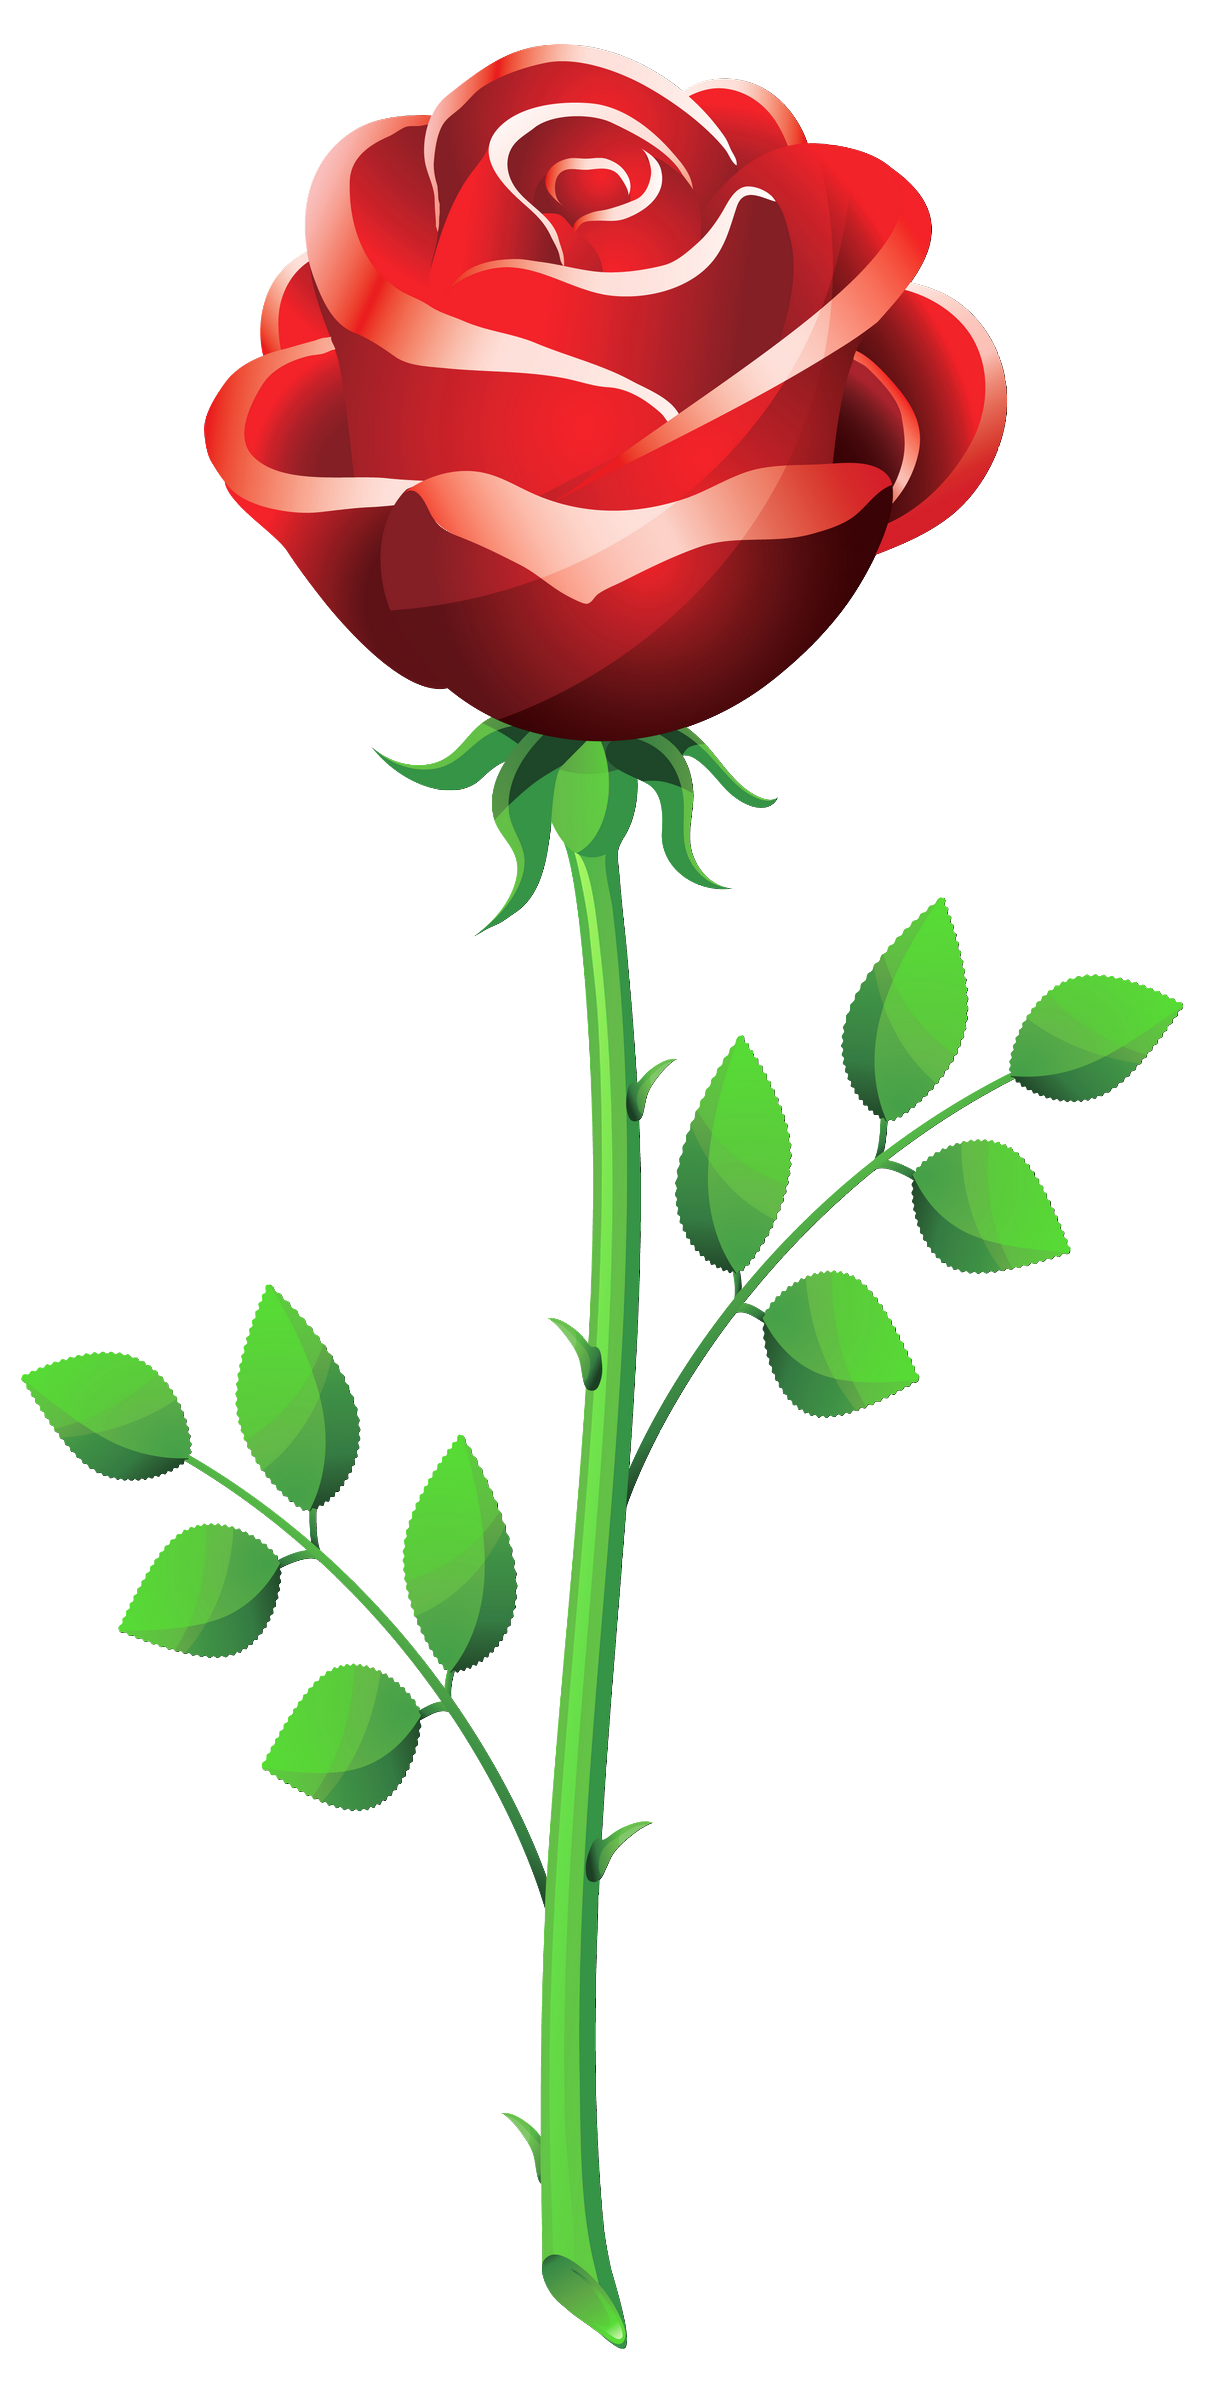 Red Flower clipart valentine rose #11